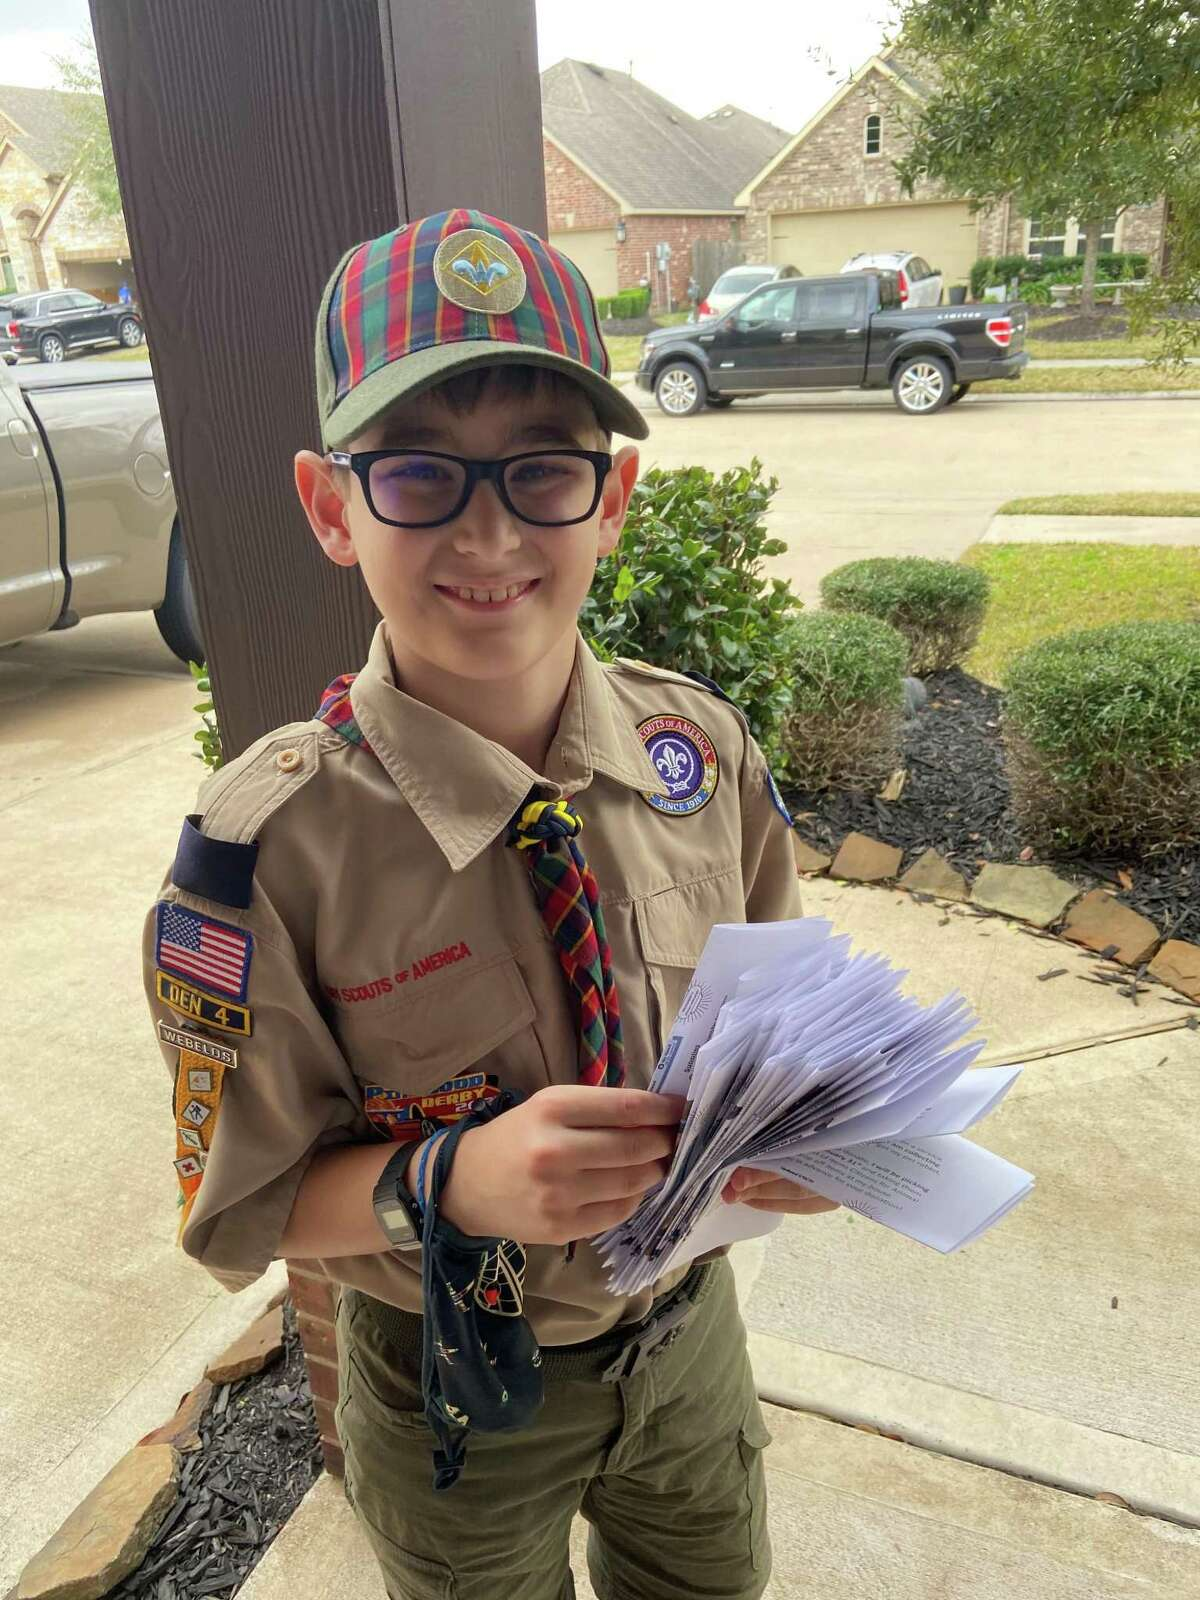 Tristan Davis, who turns 10 this month, distributes flyers in his Katy neighborhood to later collect pet food and supplies for animals at Citizens for Animal Protection.